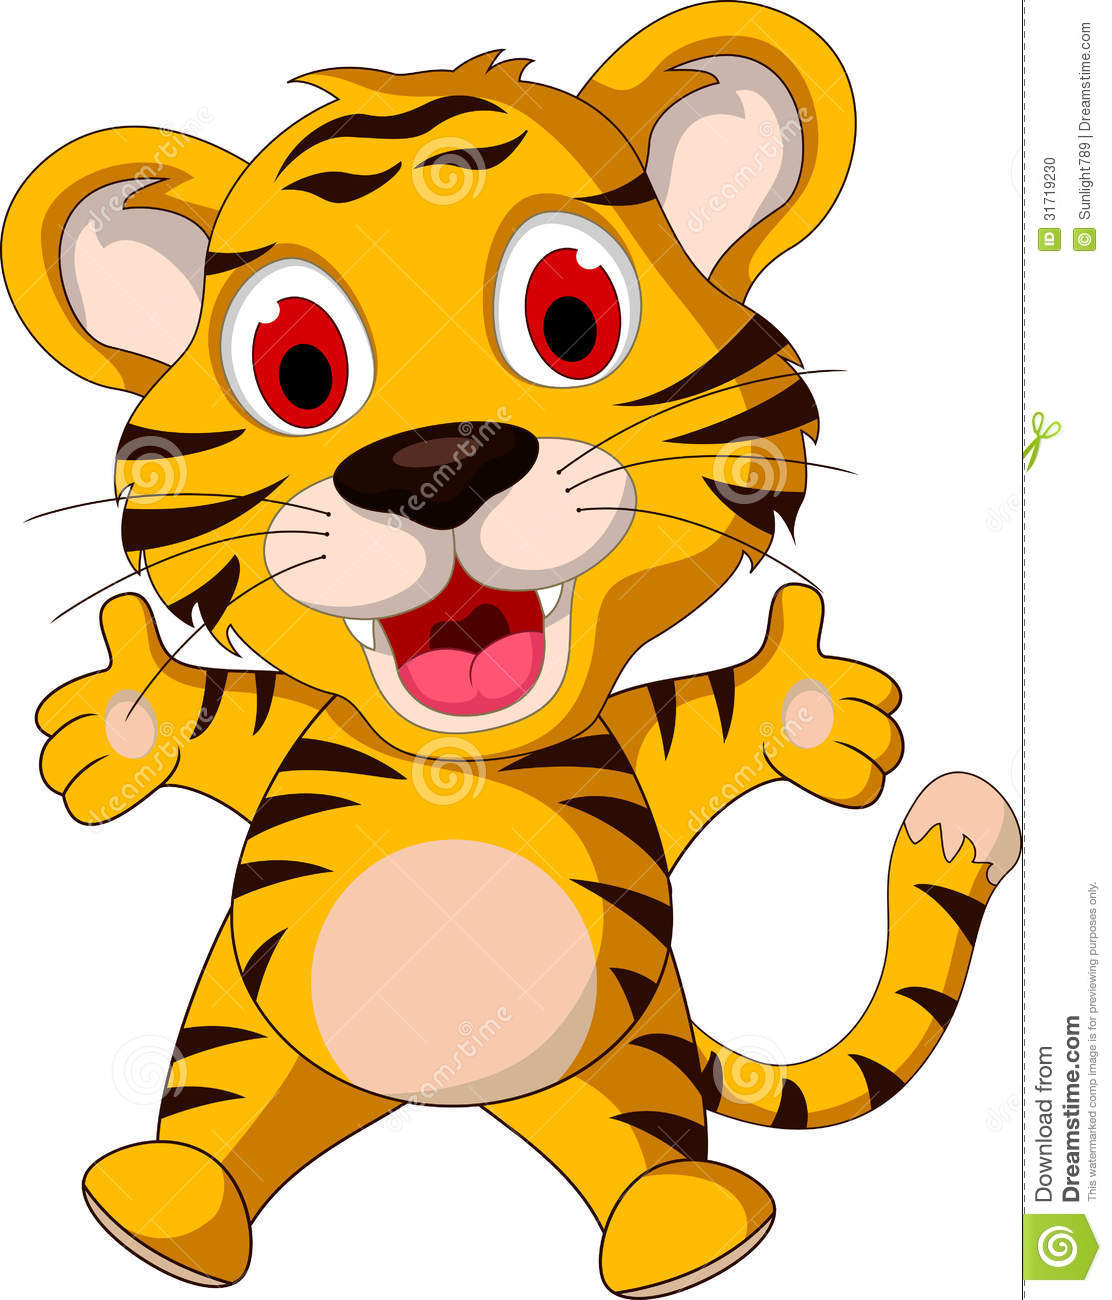 cute baby tiger clipart clipart panda free clipart images rh clipartpanda com cute tiger cub clipart cute tiger cub clipart